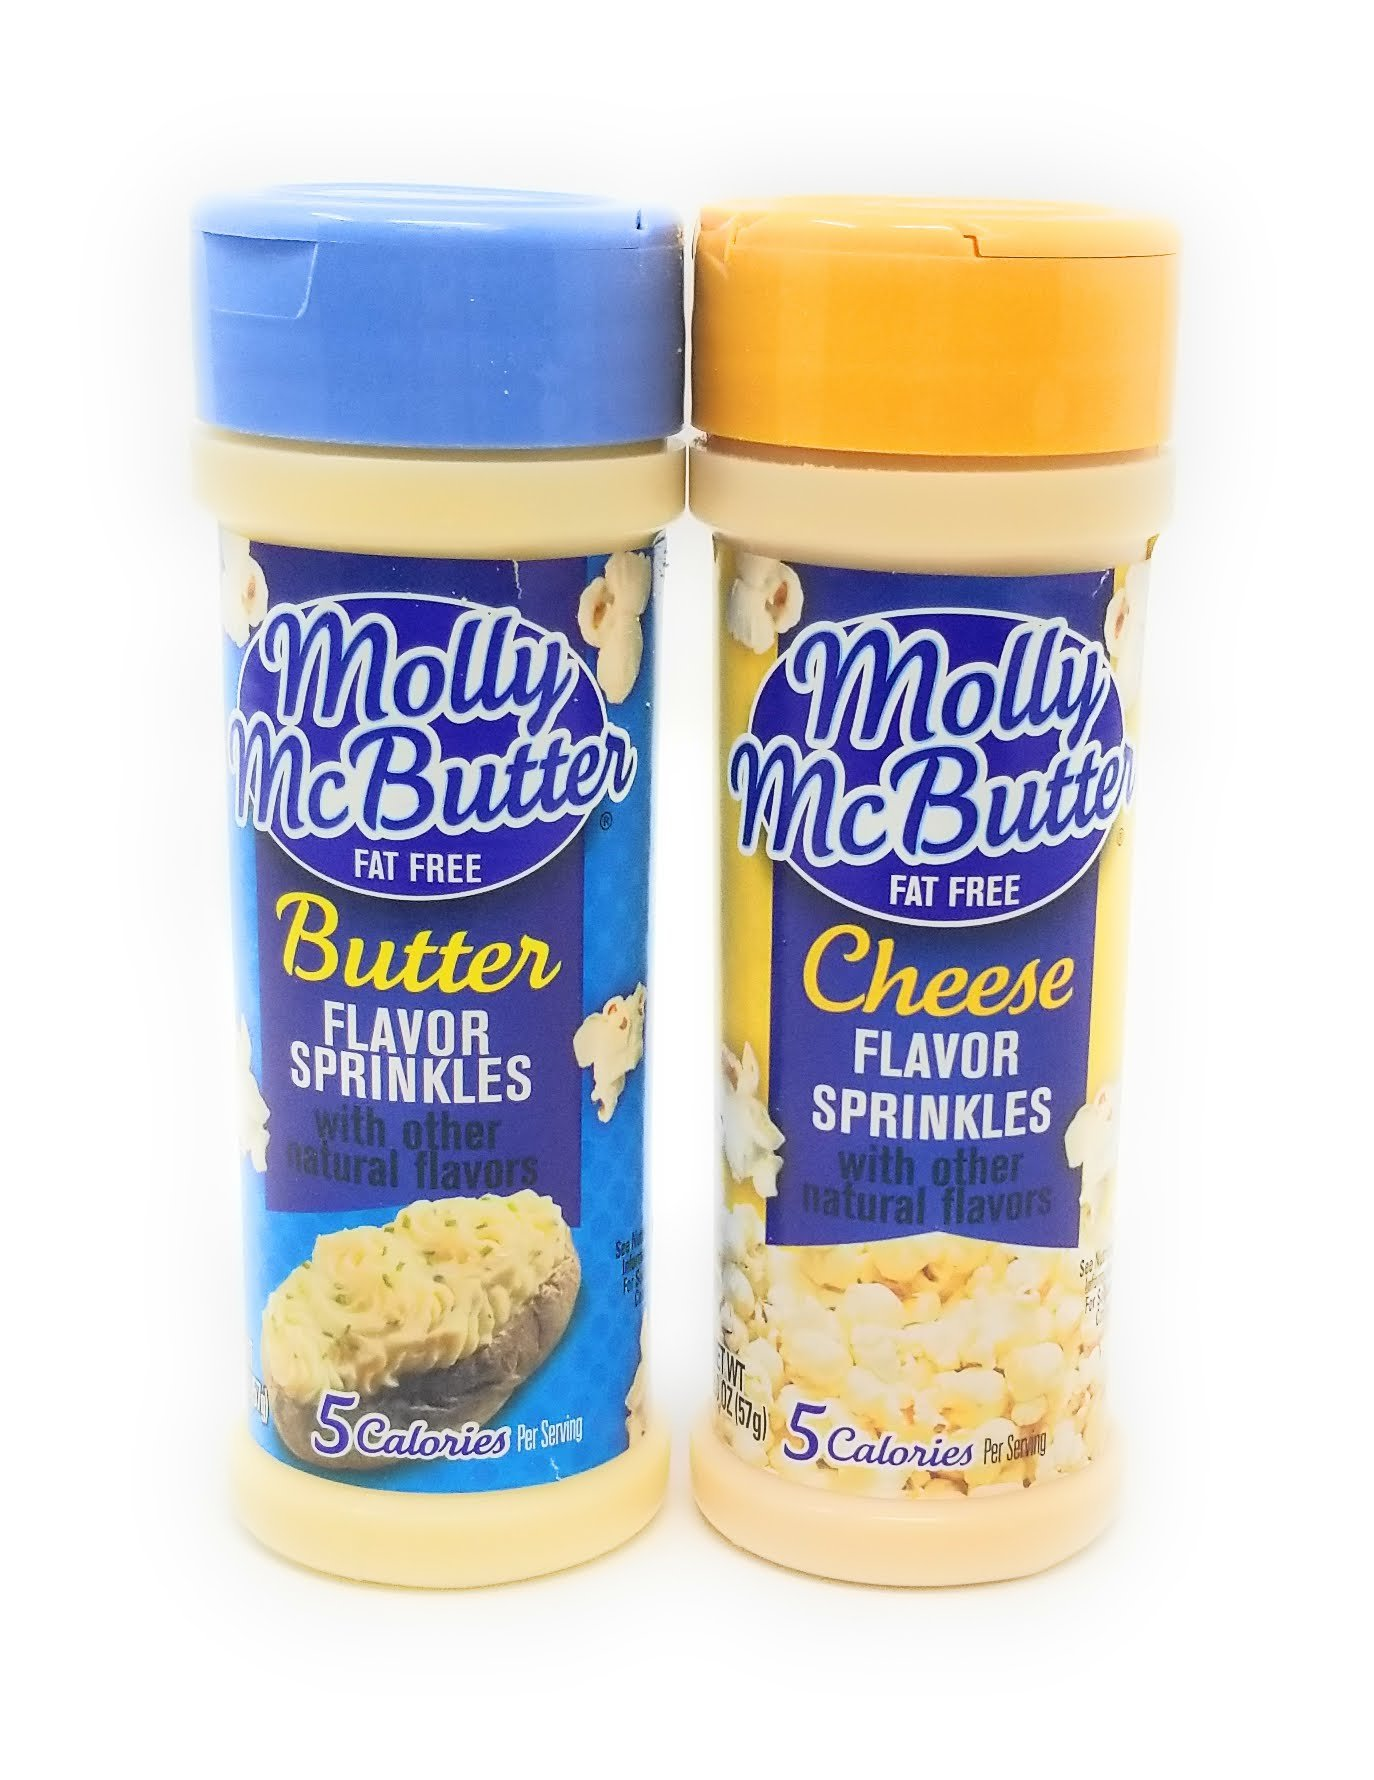 Molly Mcbutter Sprinkles Orignal Natural Butter and Cheese, 2.0-ounce